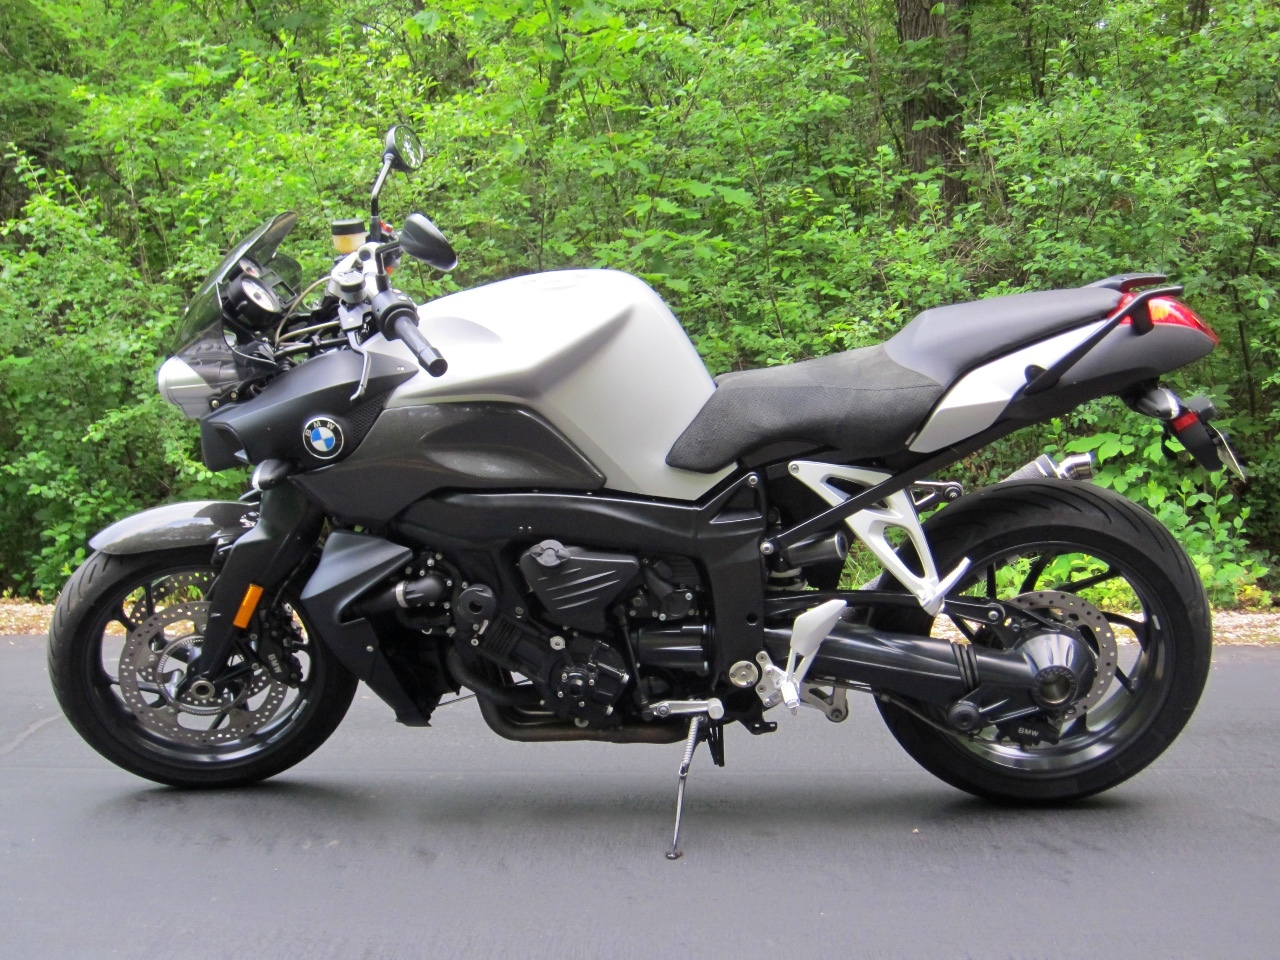 2006 K 1200 Gt For Sale - BMW Motorcycles - Cycle Trader